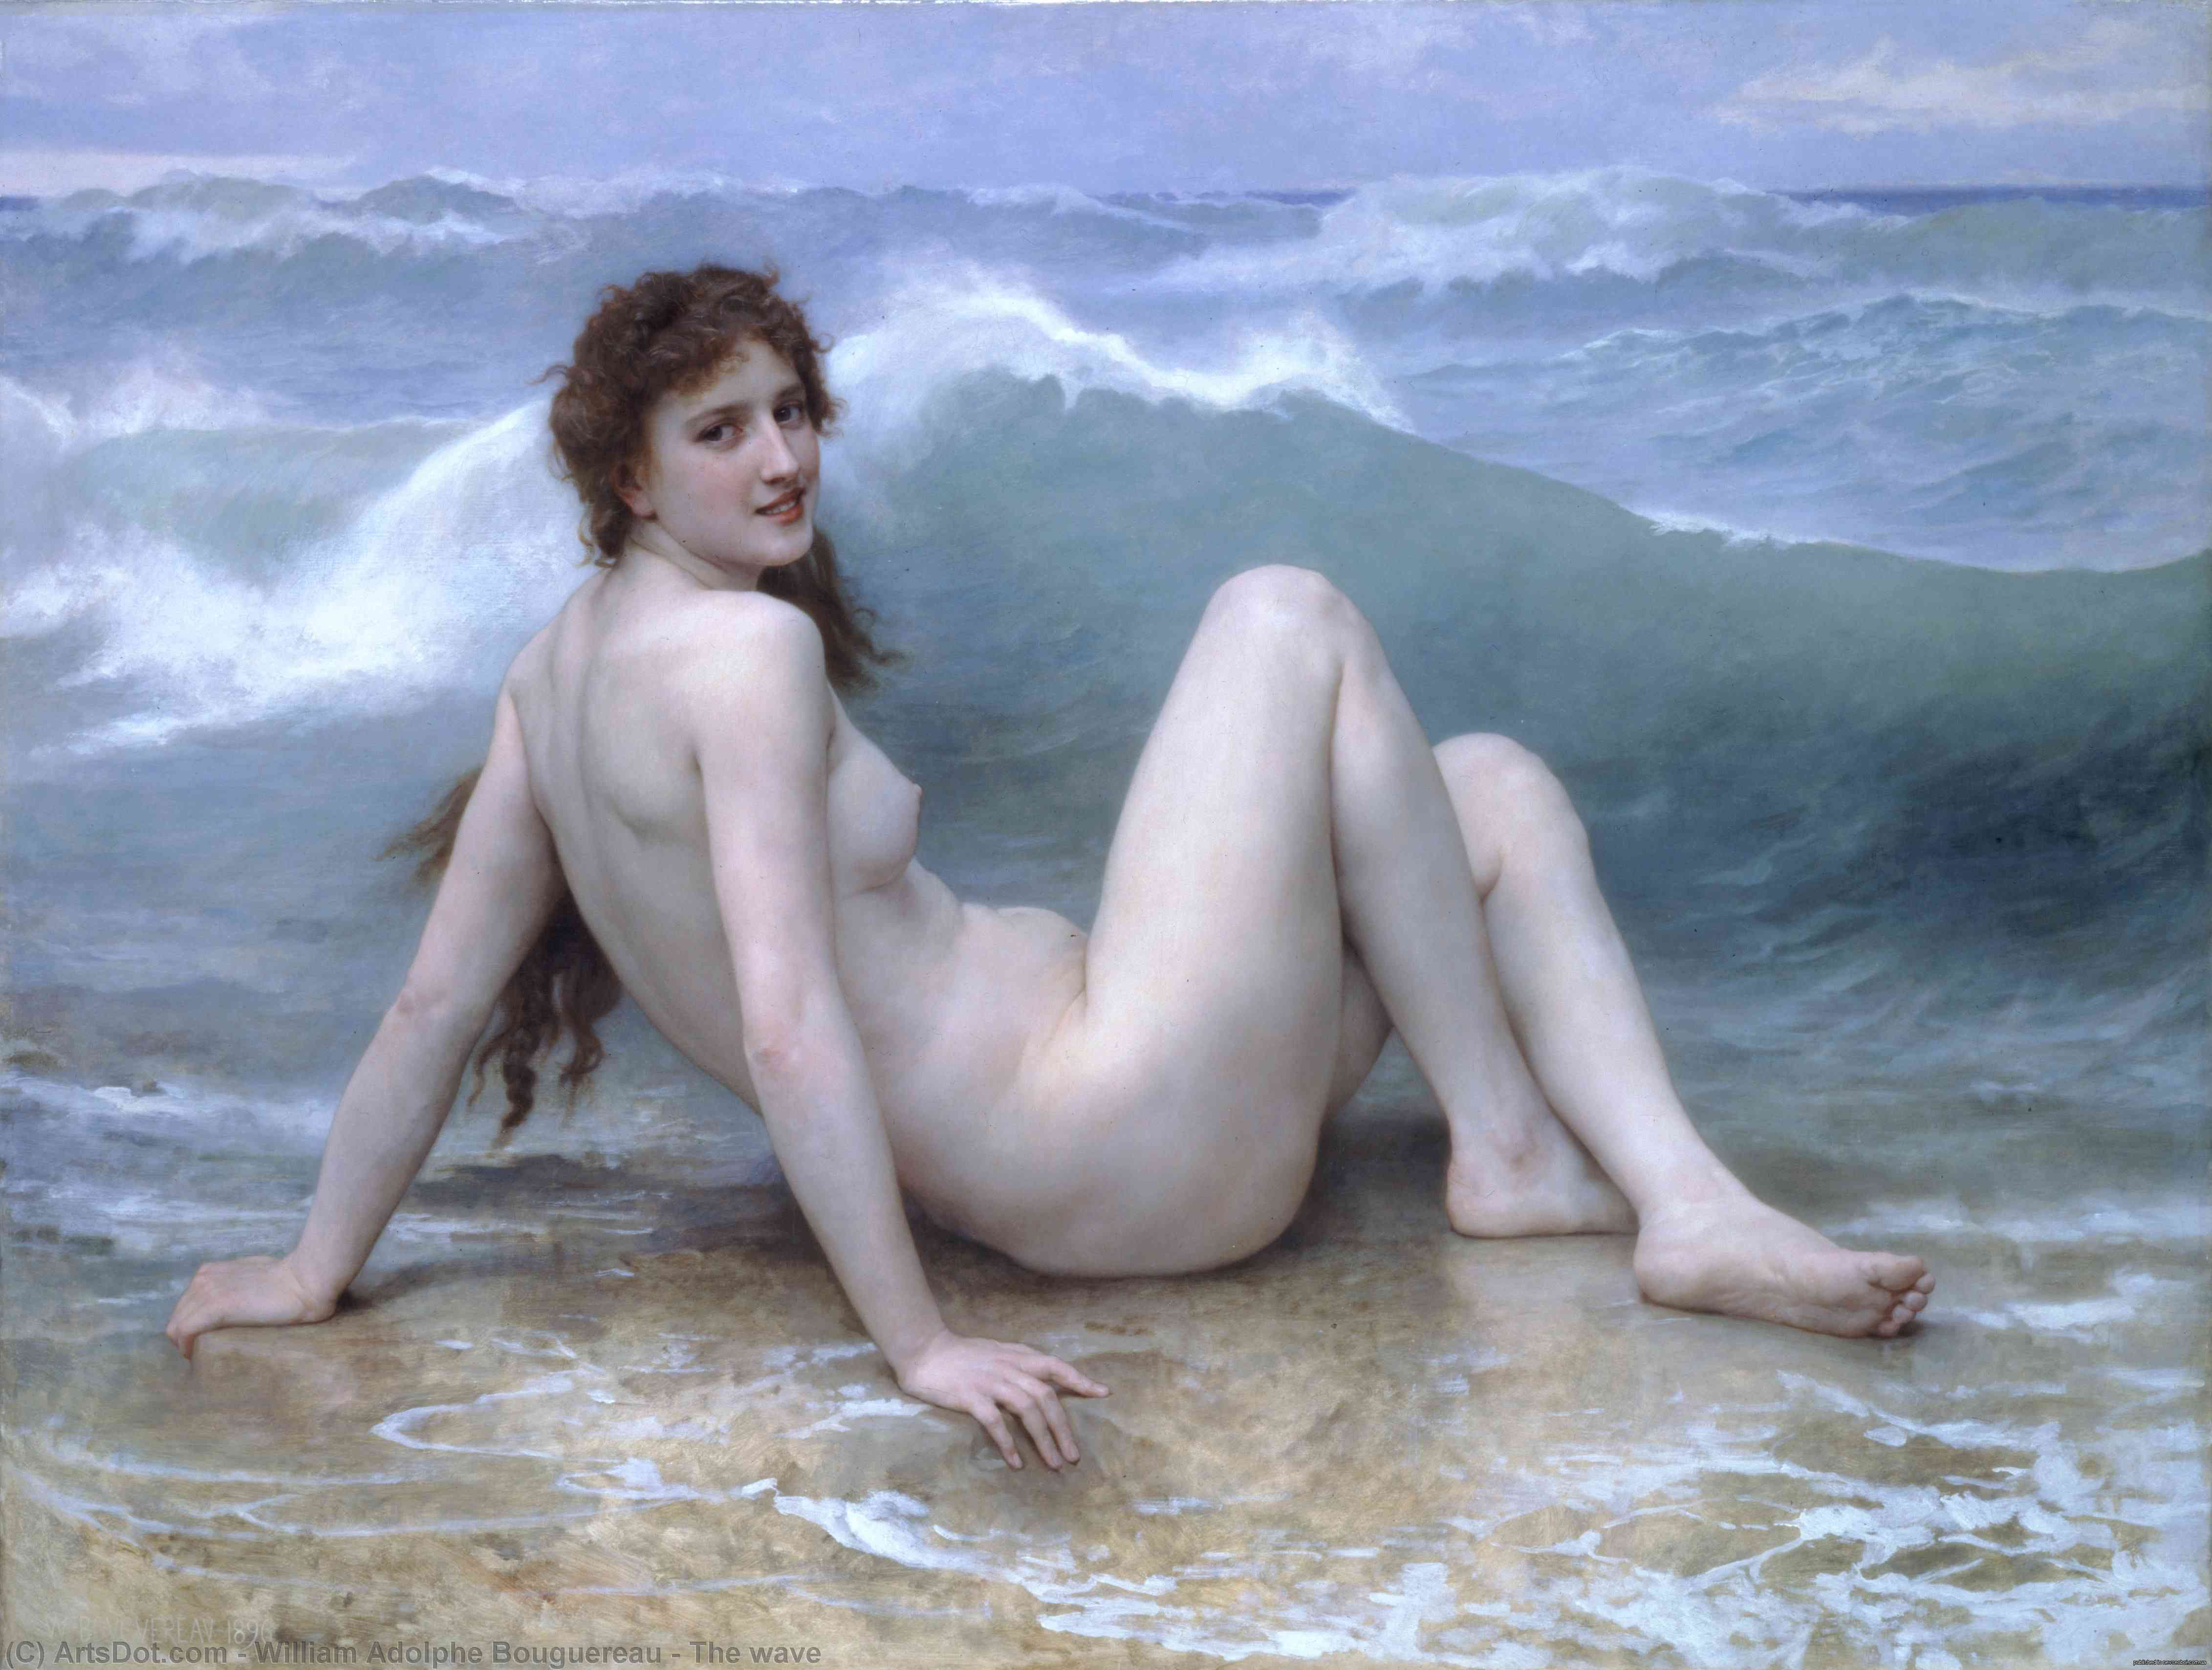 Wikioo.org - The Encyclopedia of Fine Arts - Painting, Artwork by William Adolphe Bouguereau - The wave